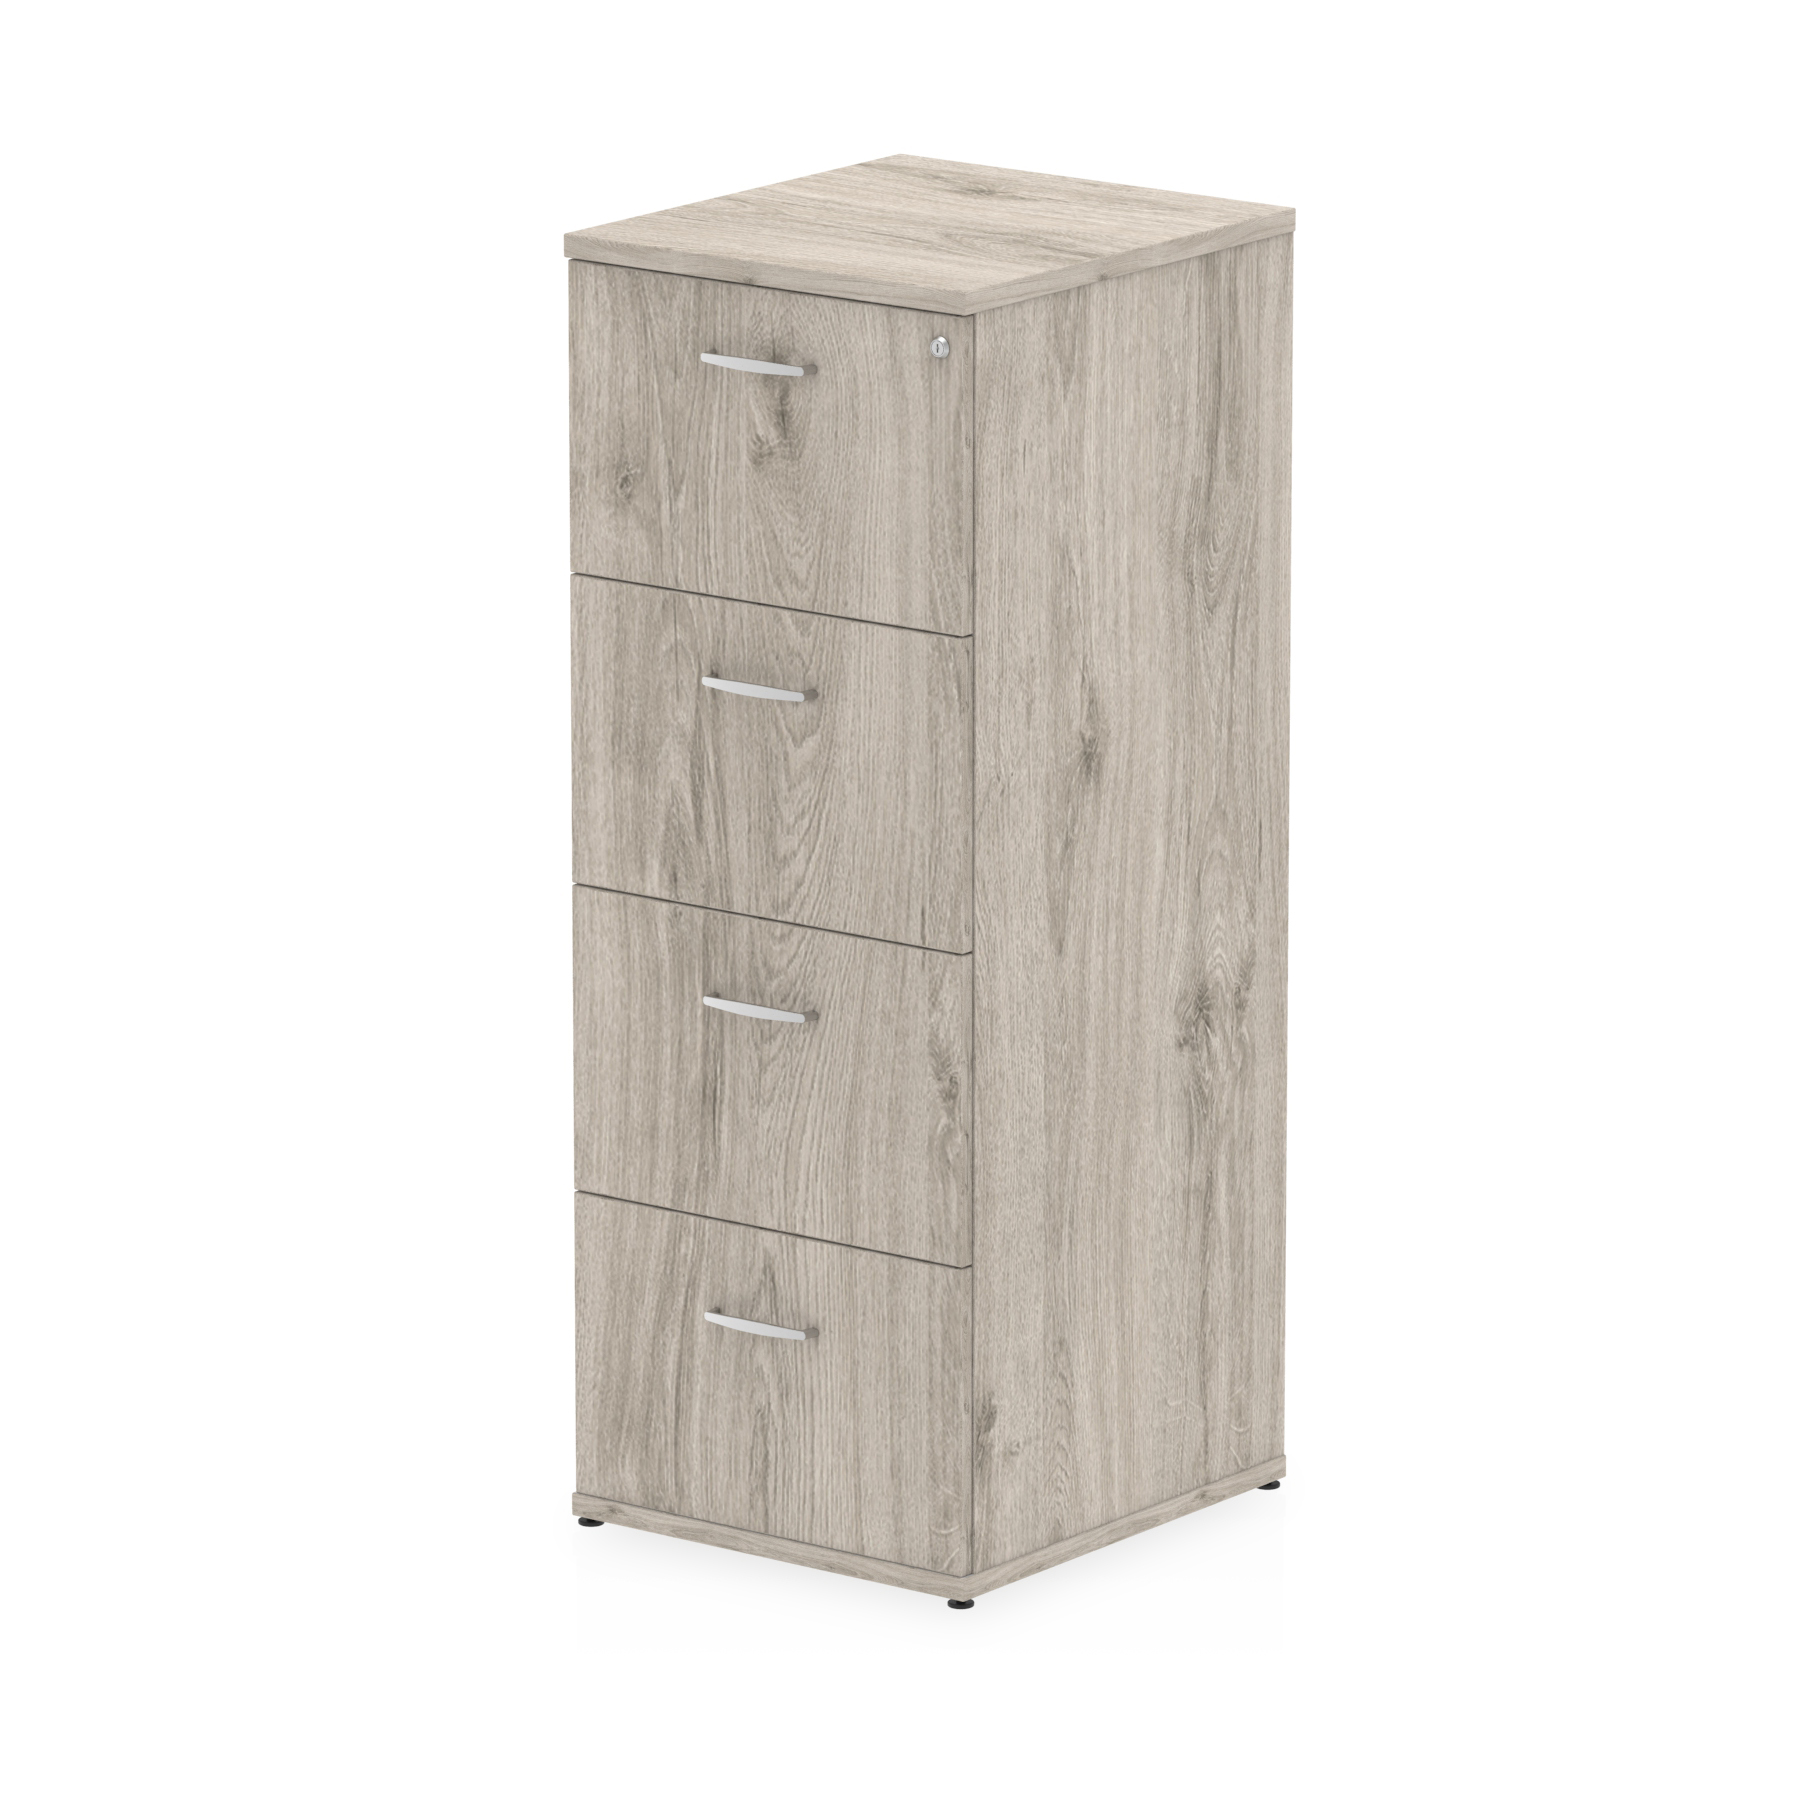 Filing cabinets or accesories Trexus 4 Drawer Filing Cabinet 500x600x1445mm Grey Oak Ref I003243